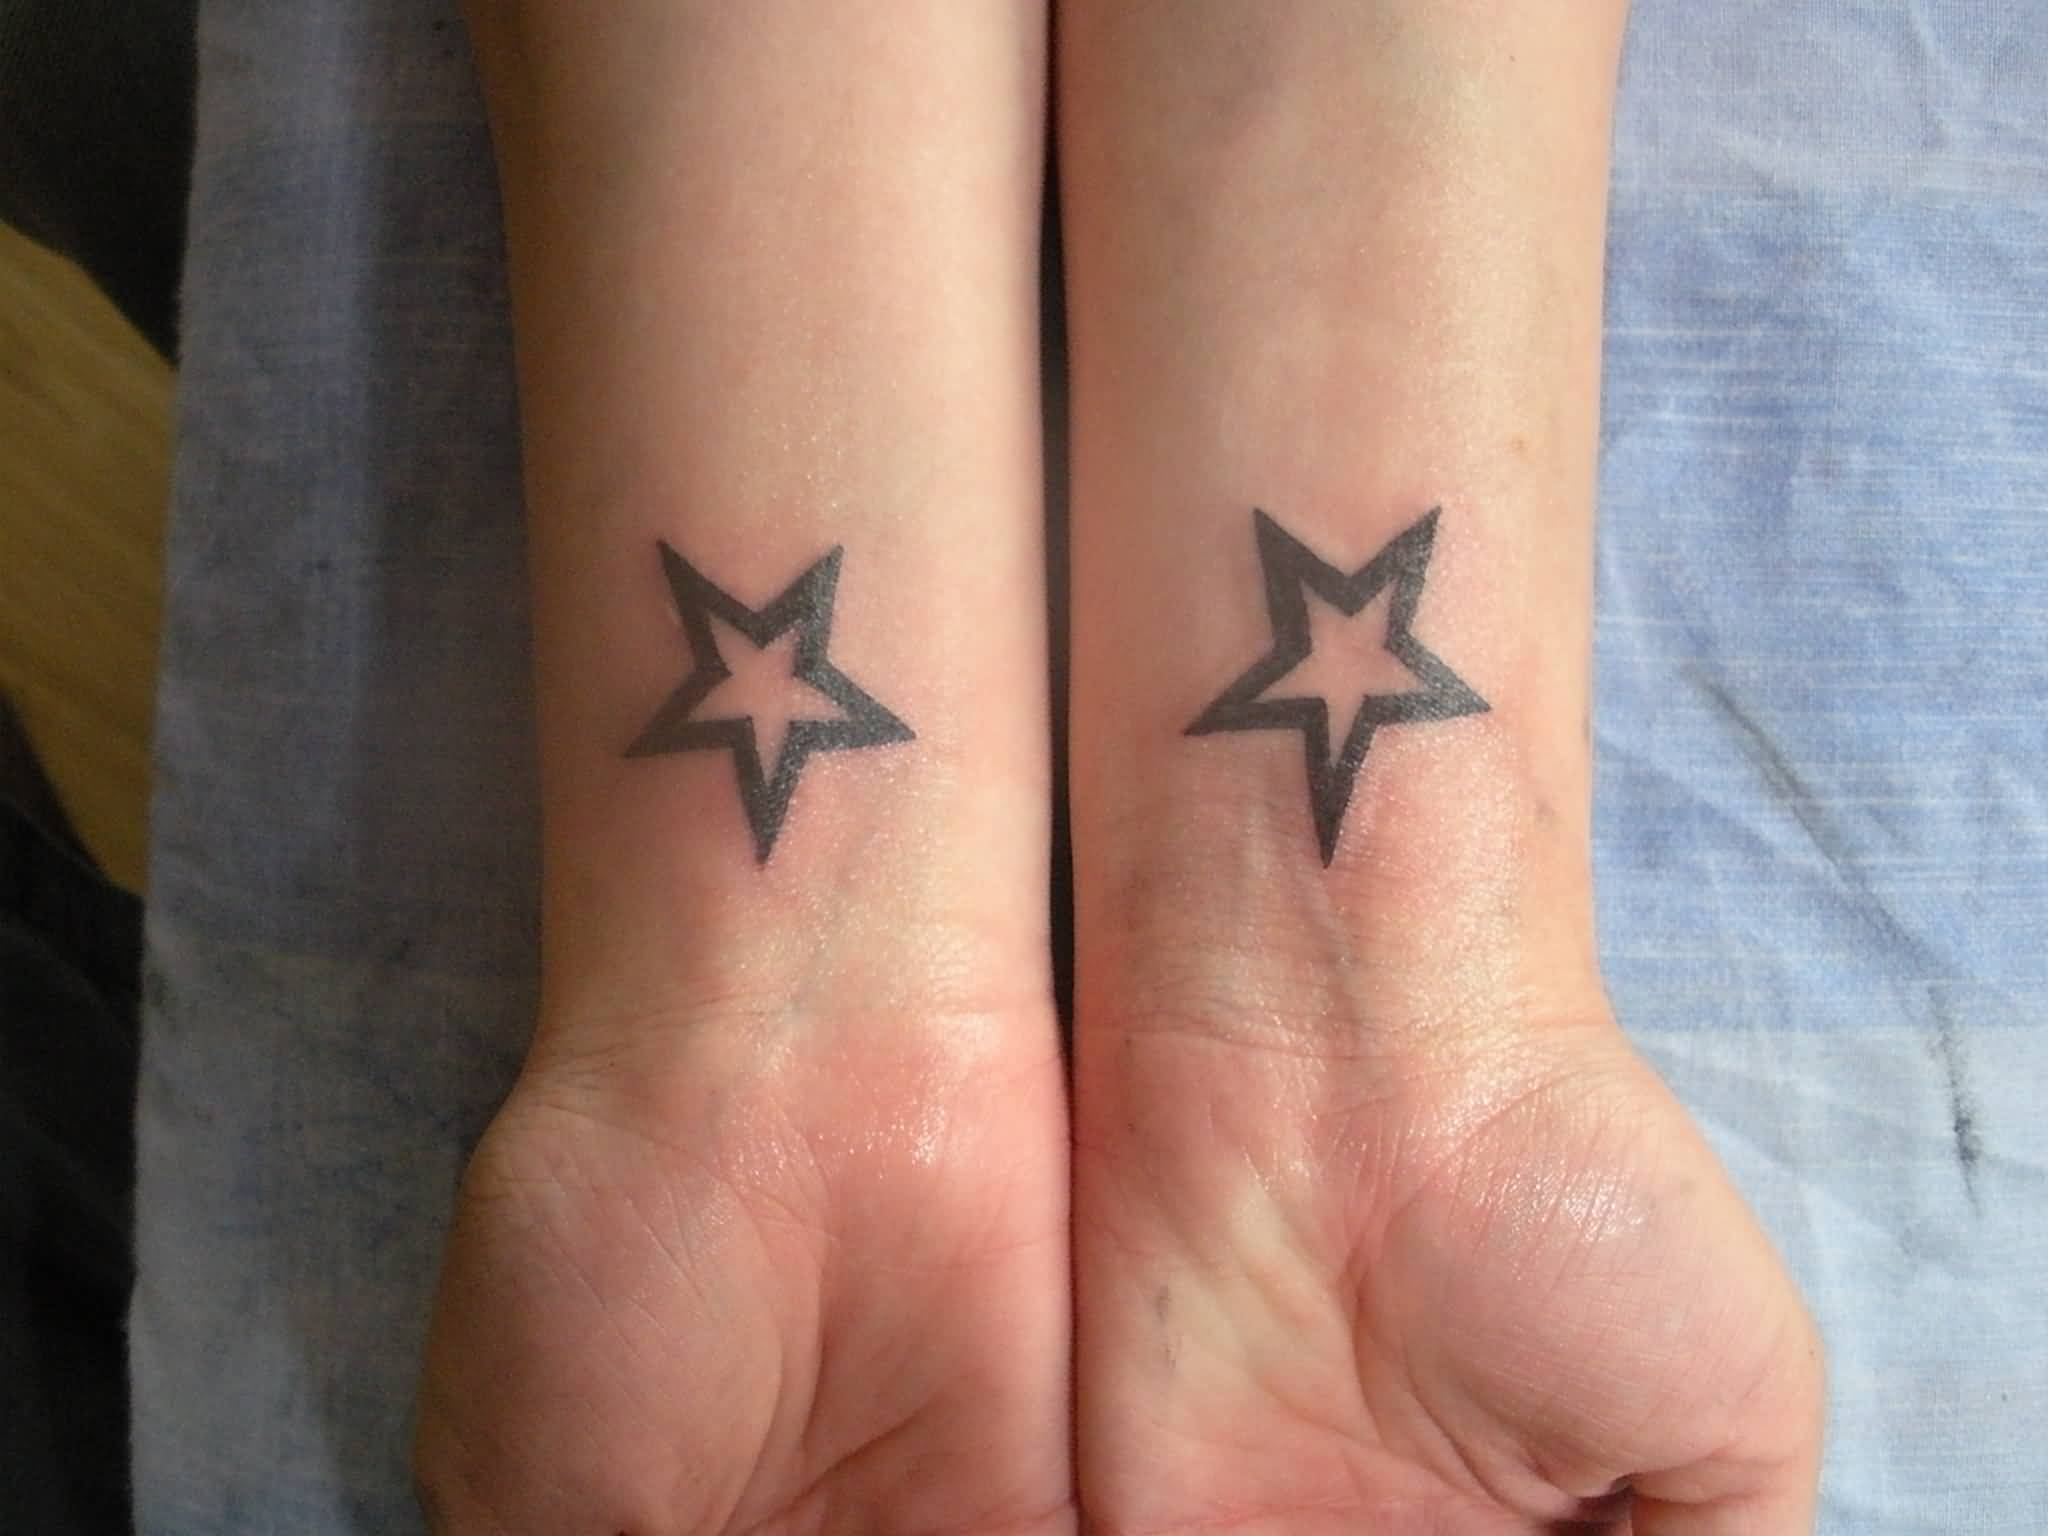 Simple Stars Tattoo (2)